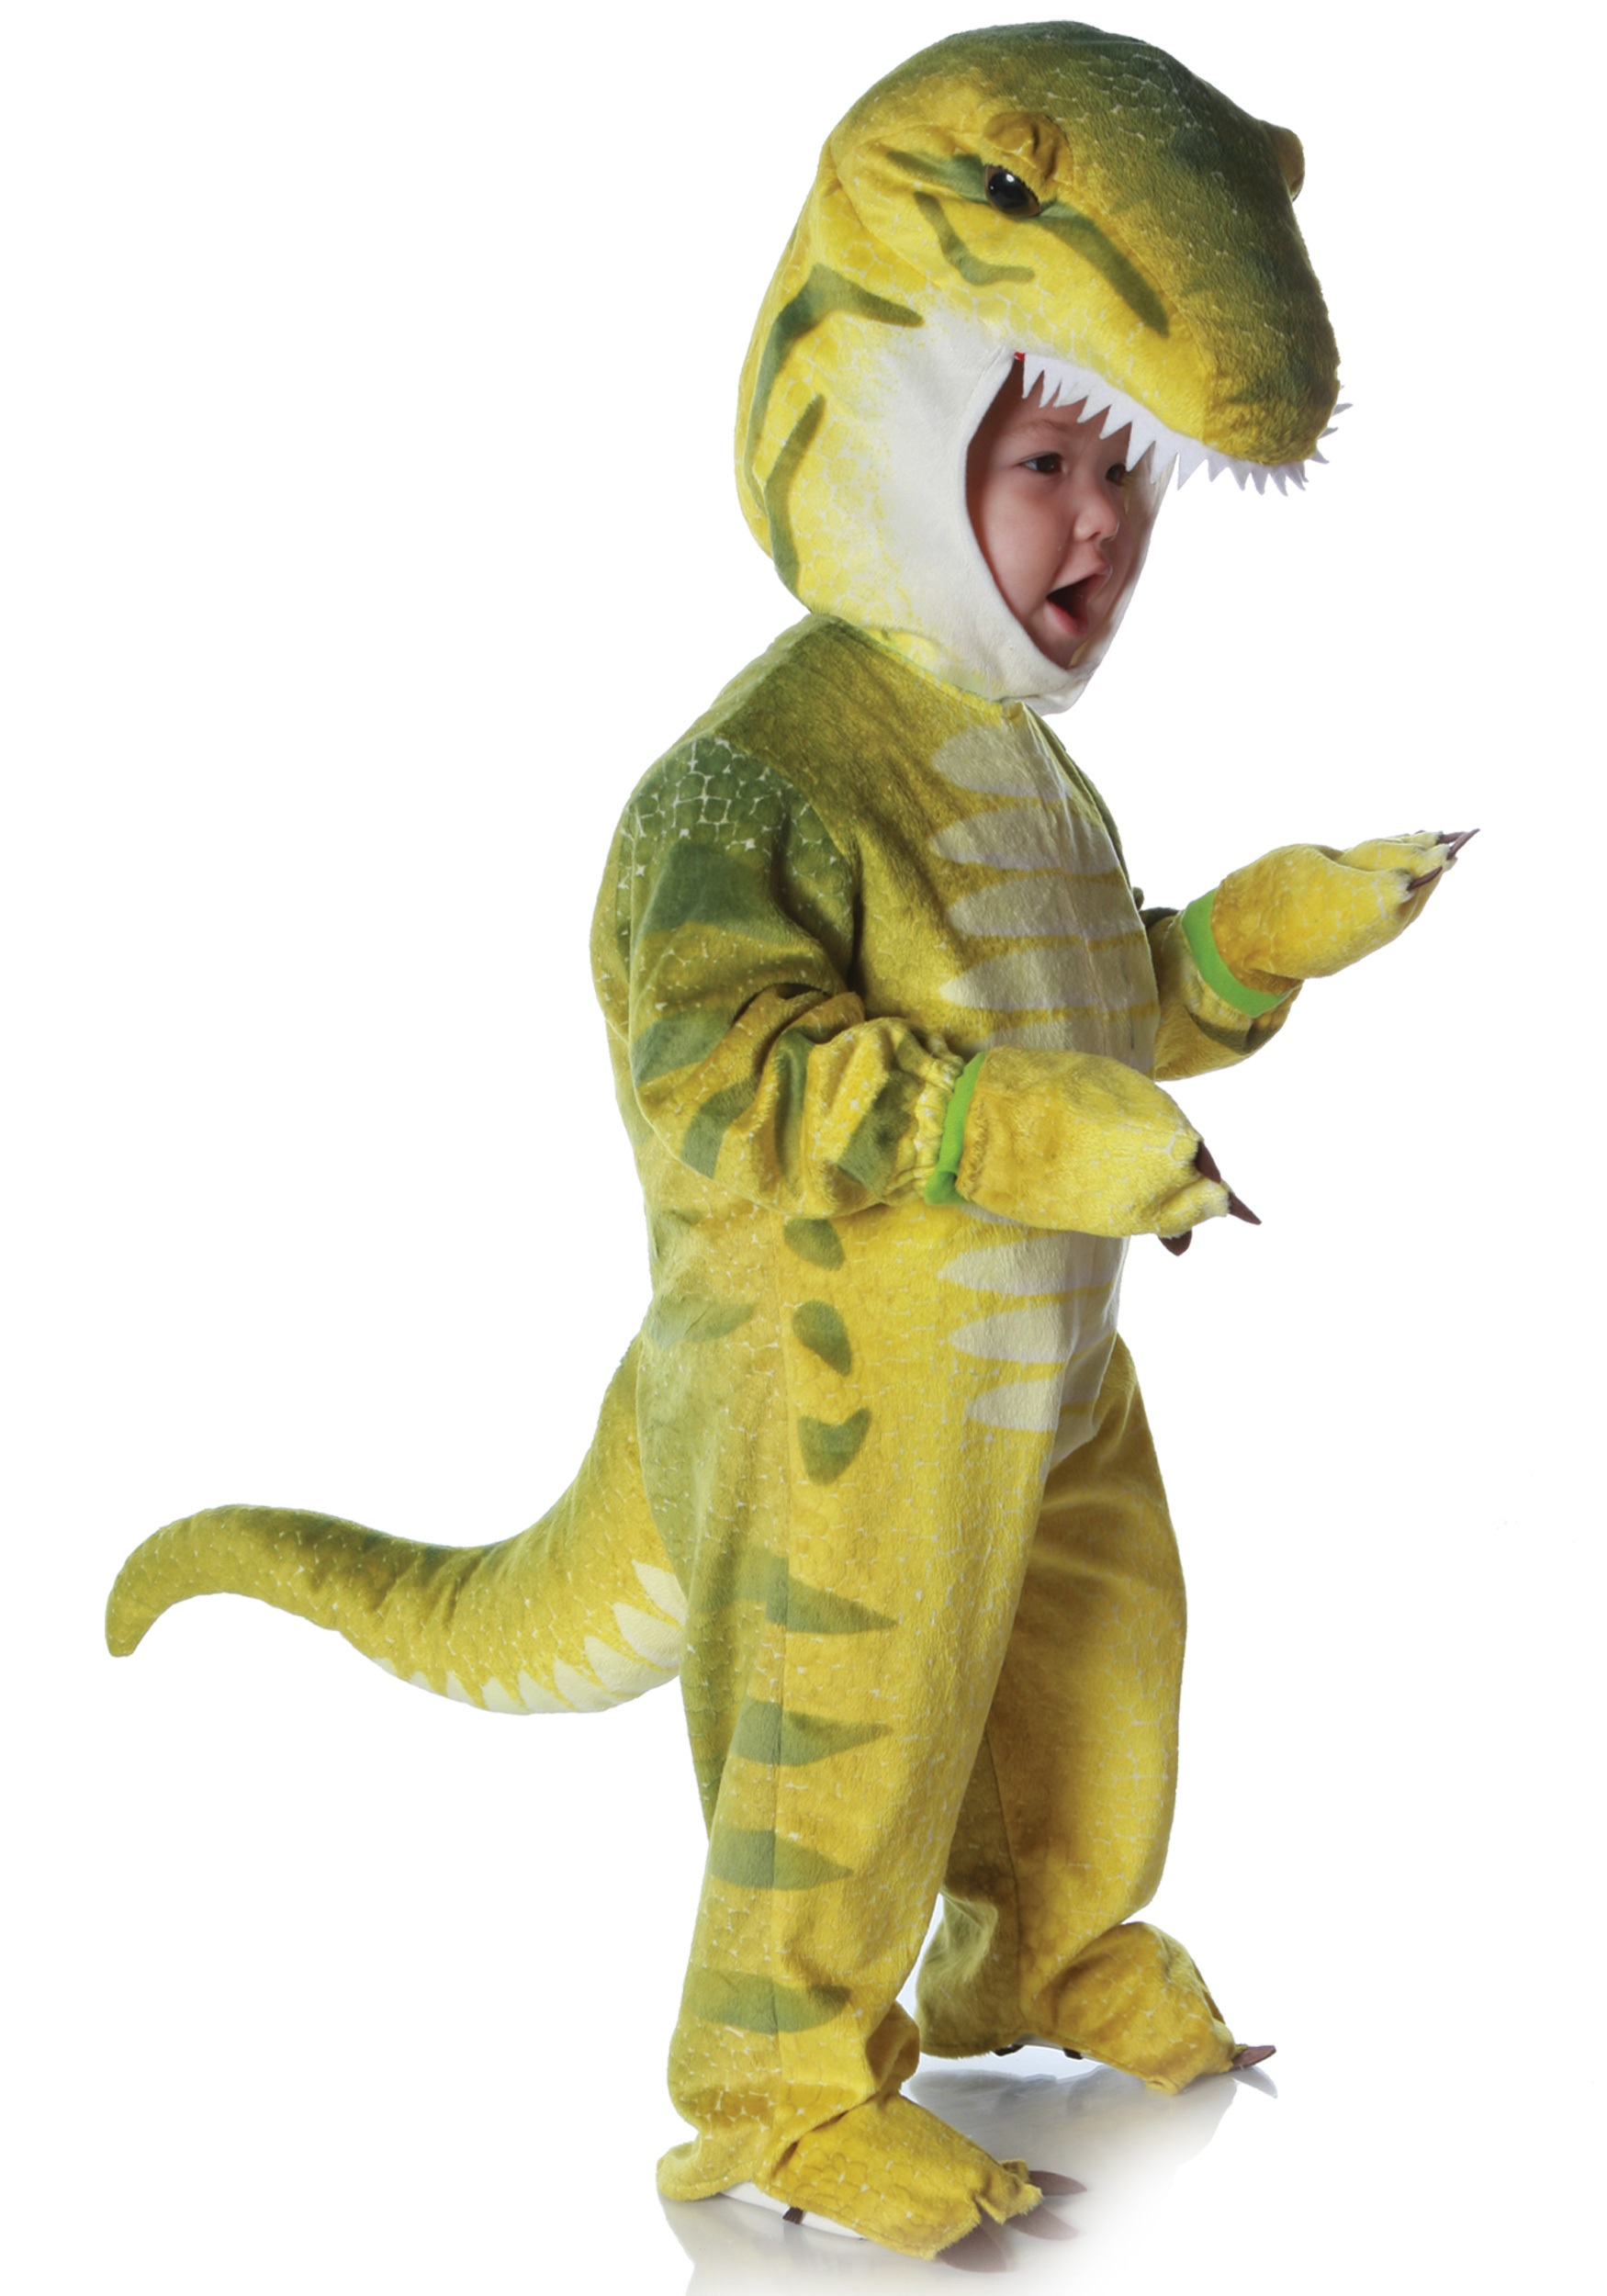 Shop for Kids dinosaur costumes Kids' Costumes at Shopzilla. Buy Toys & Games online and read professional reviews on Kids dinosaur costumes Kids' Costumes. Find .